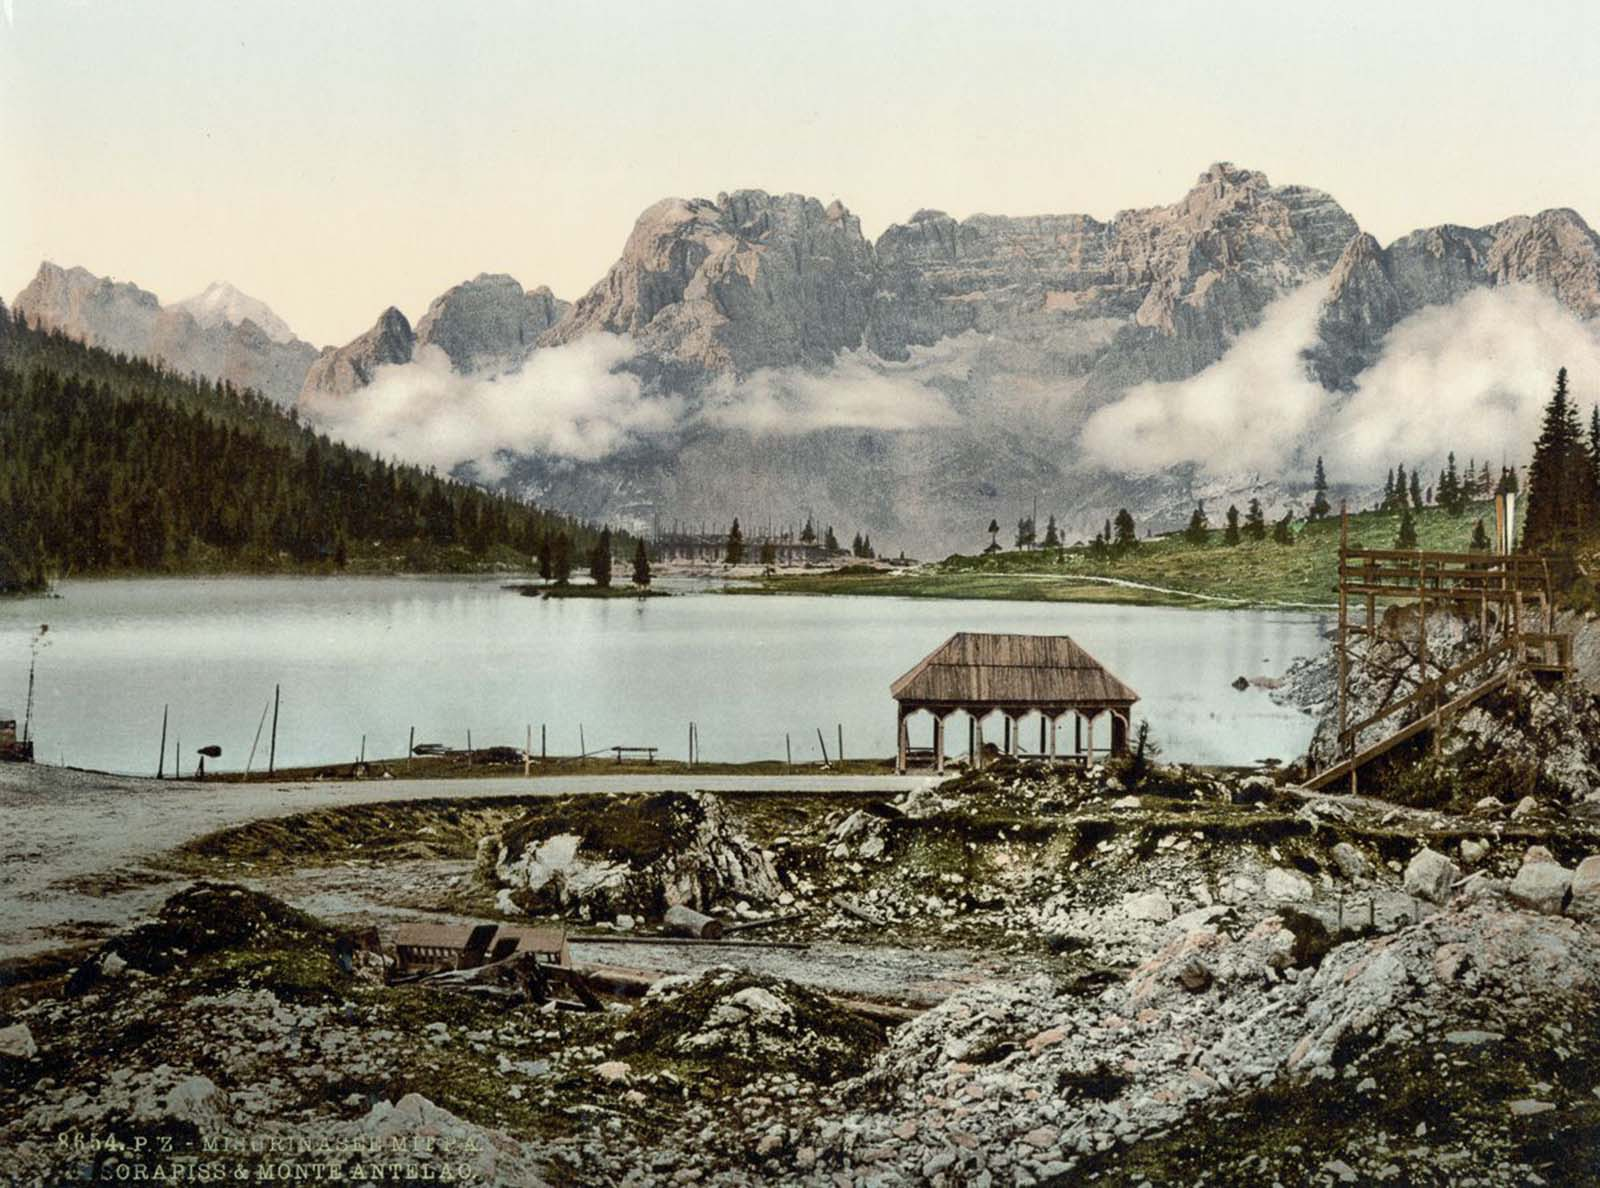 Misurinasee, Sorapiss and Monte Antelao.